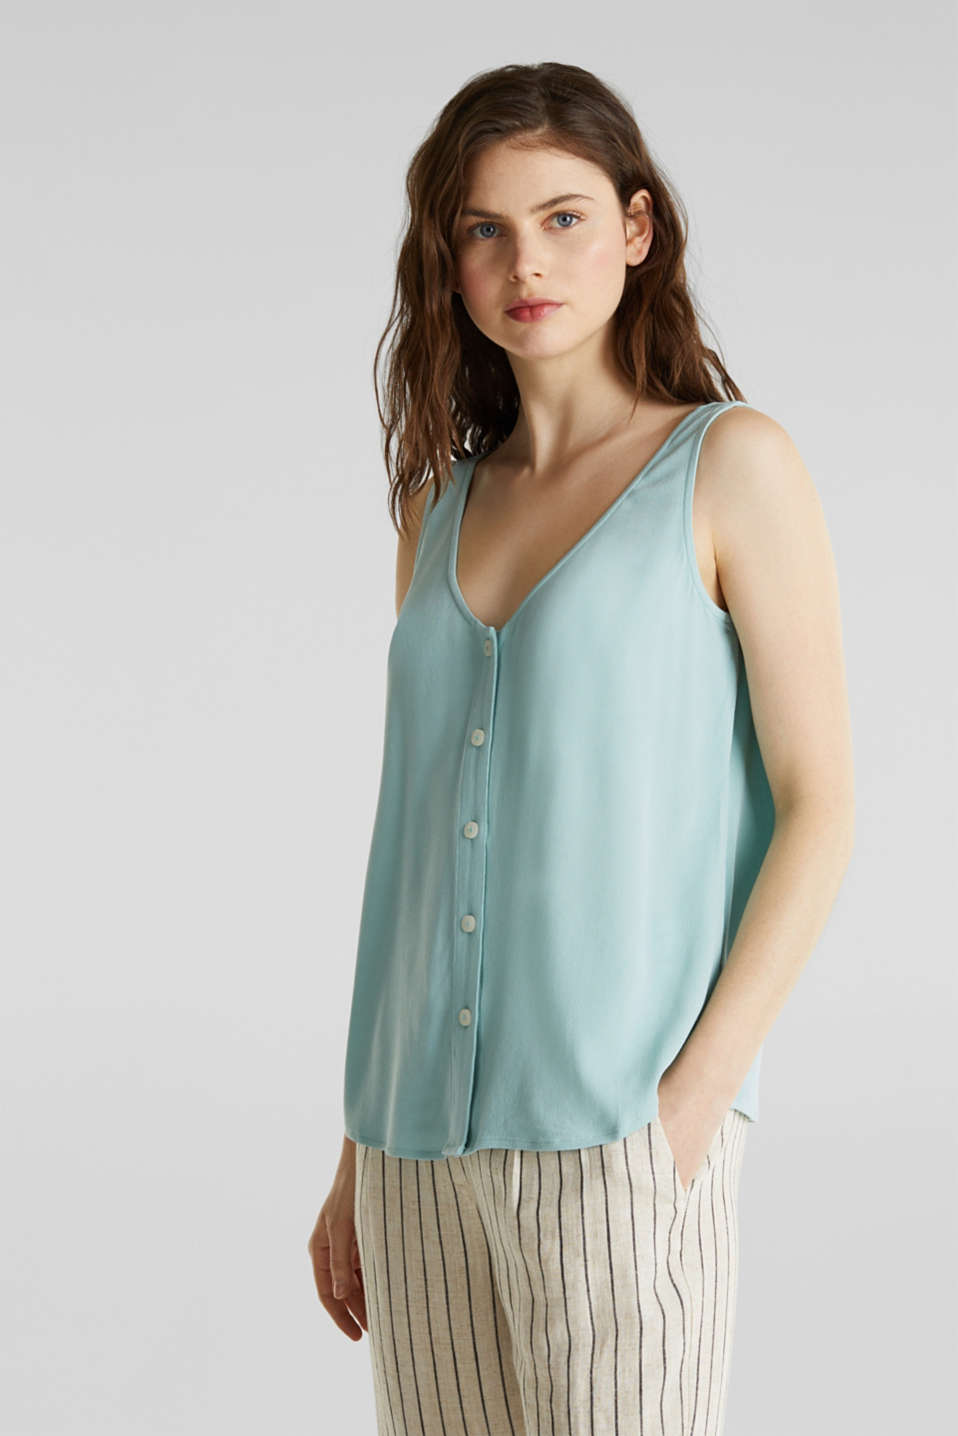 Esprit - Crêpe blouse top with a button placket